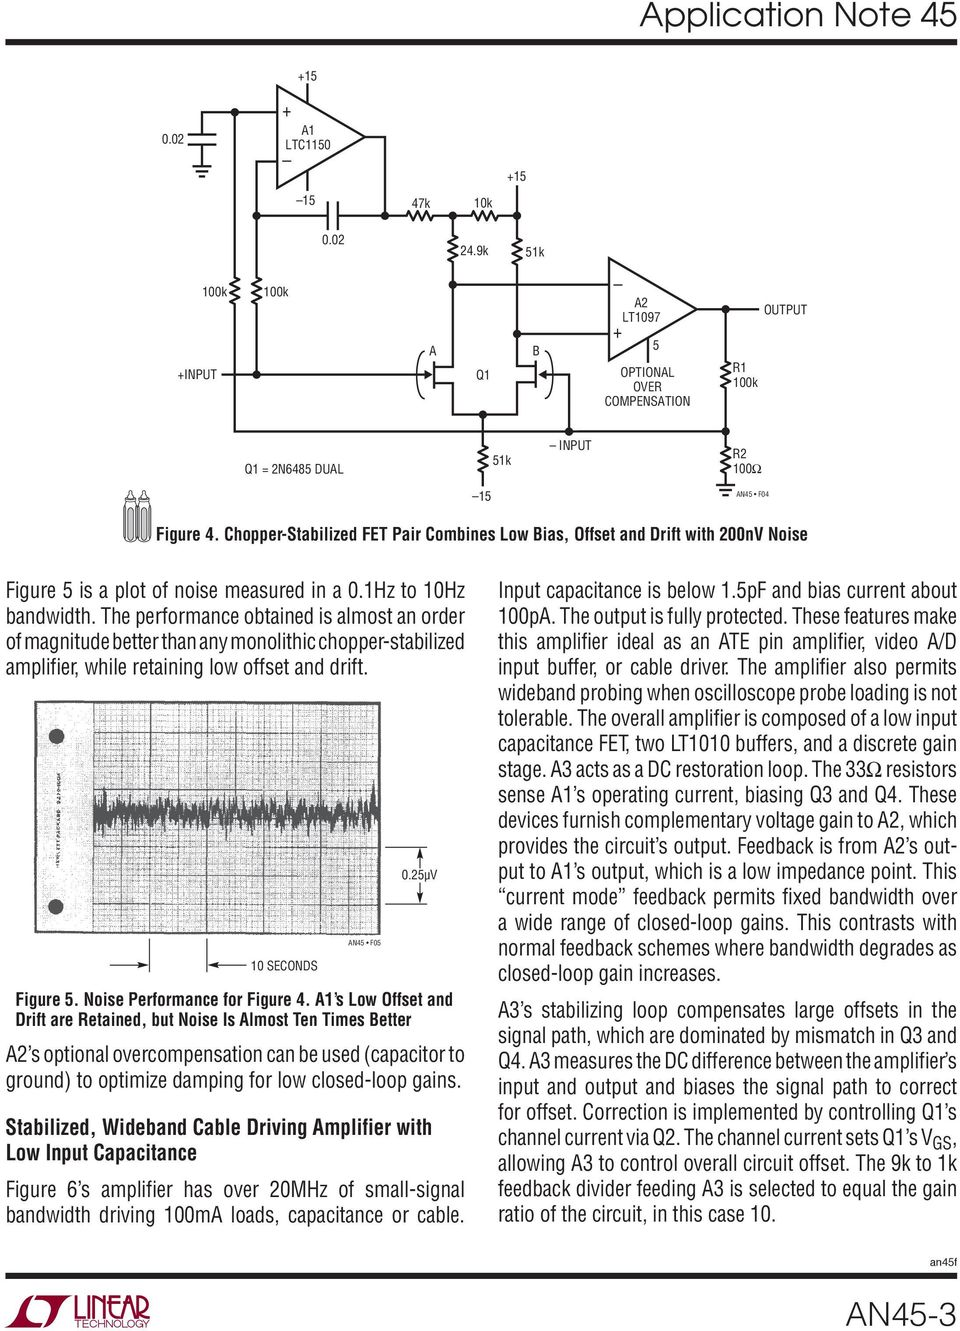 Application Note 45 June Measurement And Control Circuit Collection Lt1006 Precision Single Supply Op Amp Linear Technology The Performance Obtained Is Almost An Order Of Magnitude Better Than Any Monolithic Chopper Stabilized